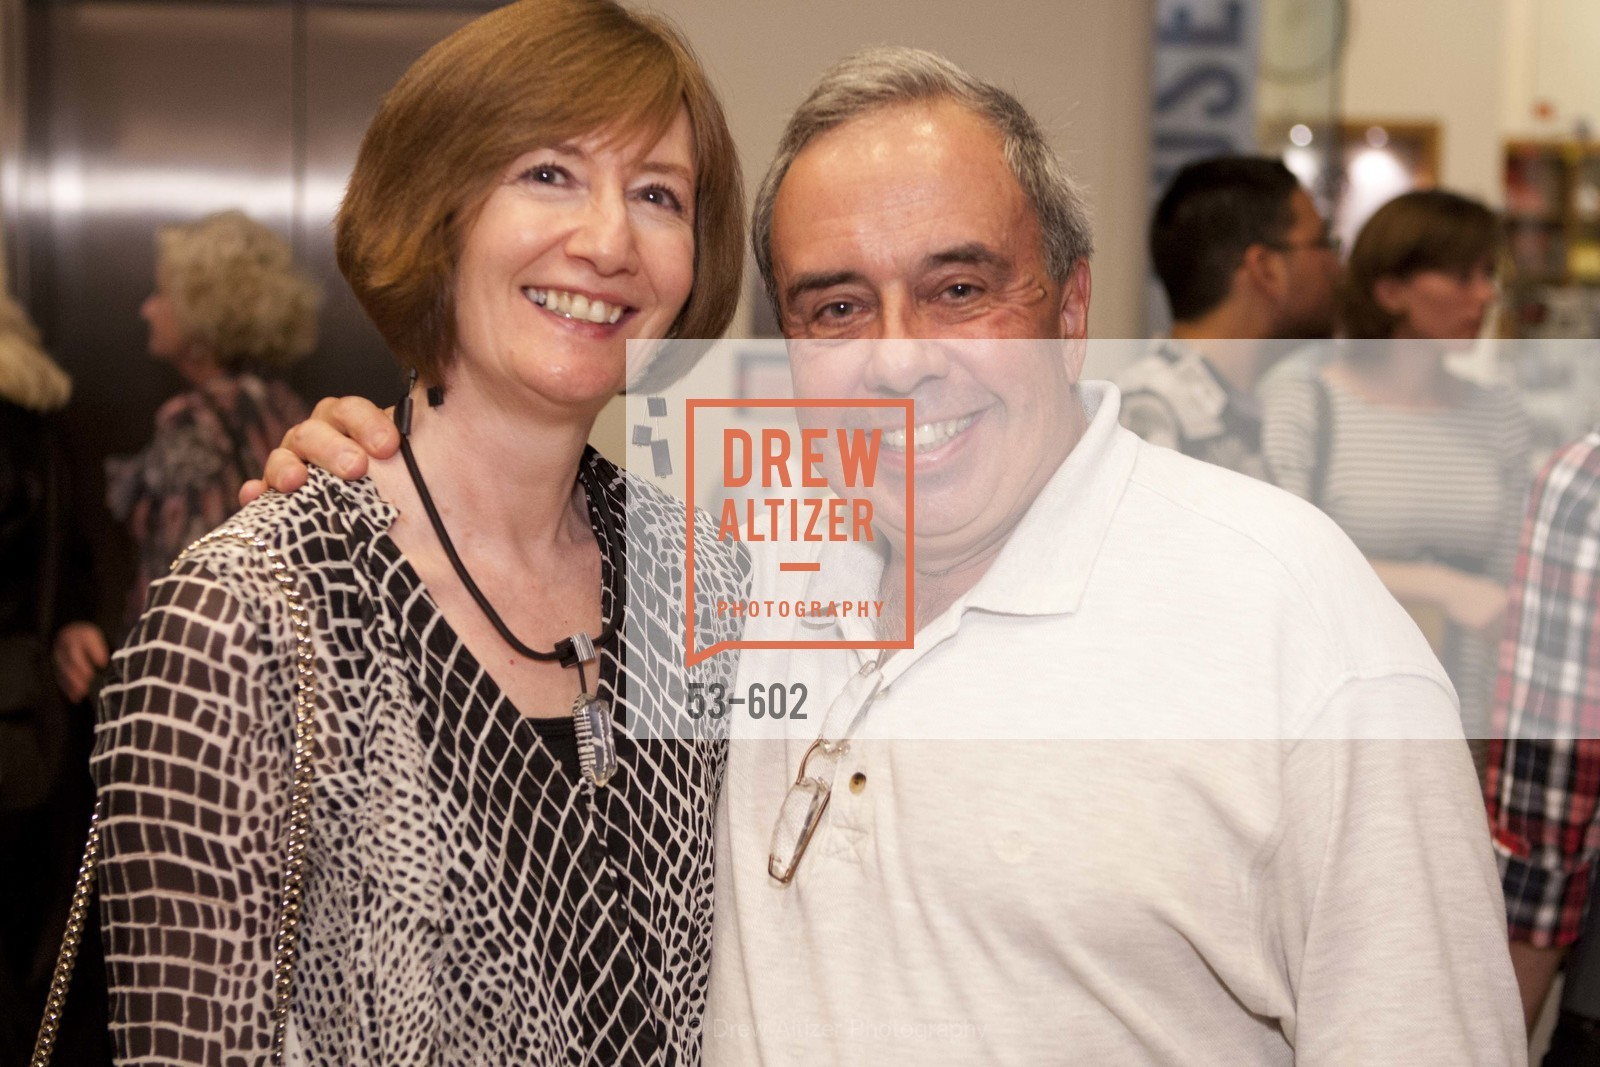 Yvonne Nevins, Mike Nevins, SAN JOSE MUSEUM OF ART Fall Reception Opening, US, October 8th, 2014,Drew Altizer, Drew Altizer Photography, full-service agency, private events, San Francisco photographer, photographer california